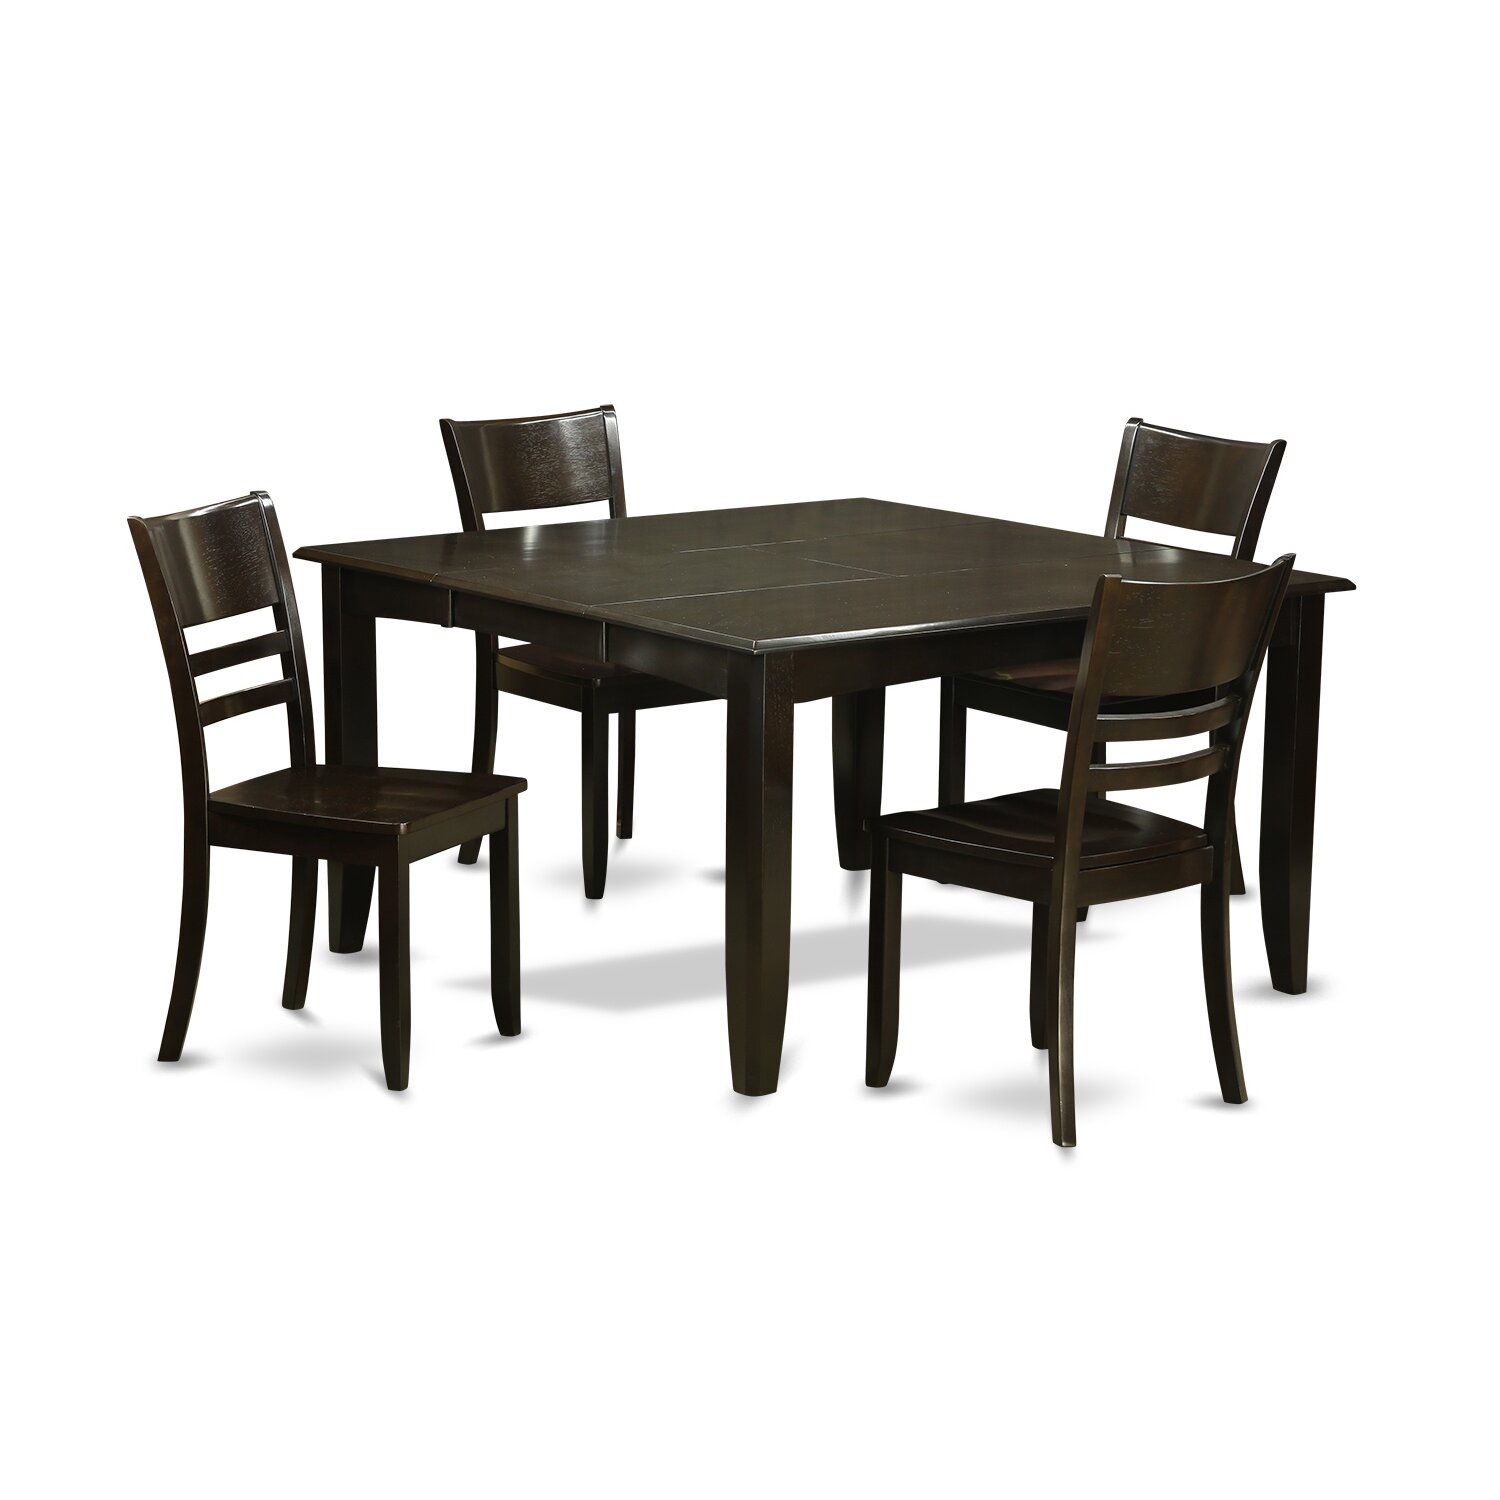 Wooden importers parfait 5 piece dining set wayfair for Dining room kitchen sets